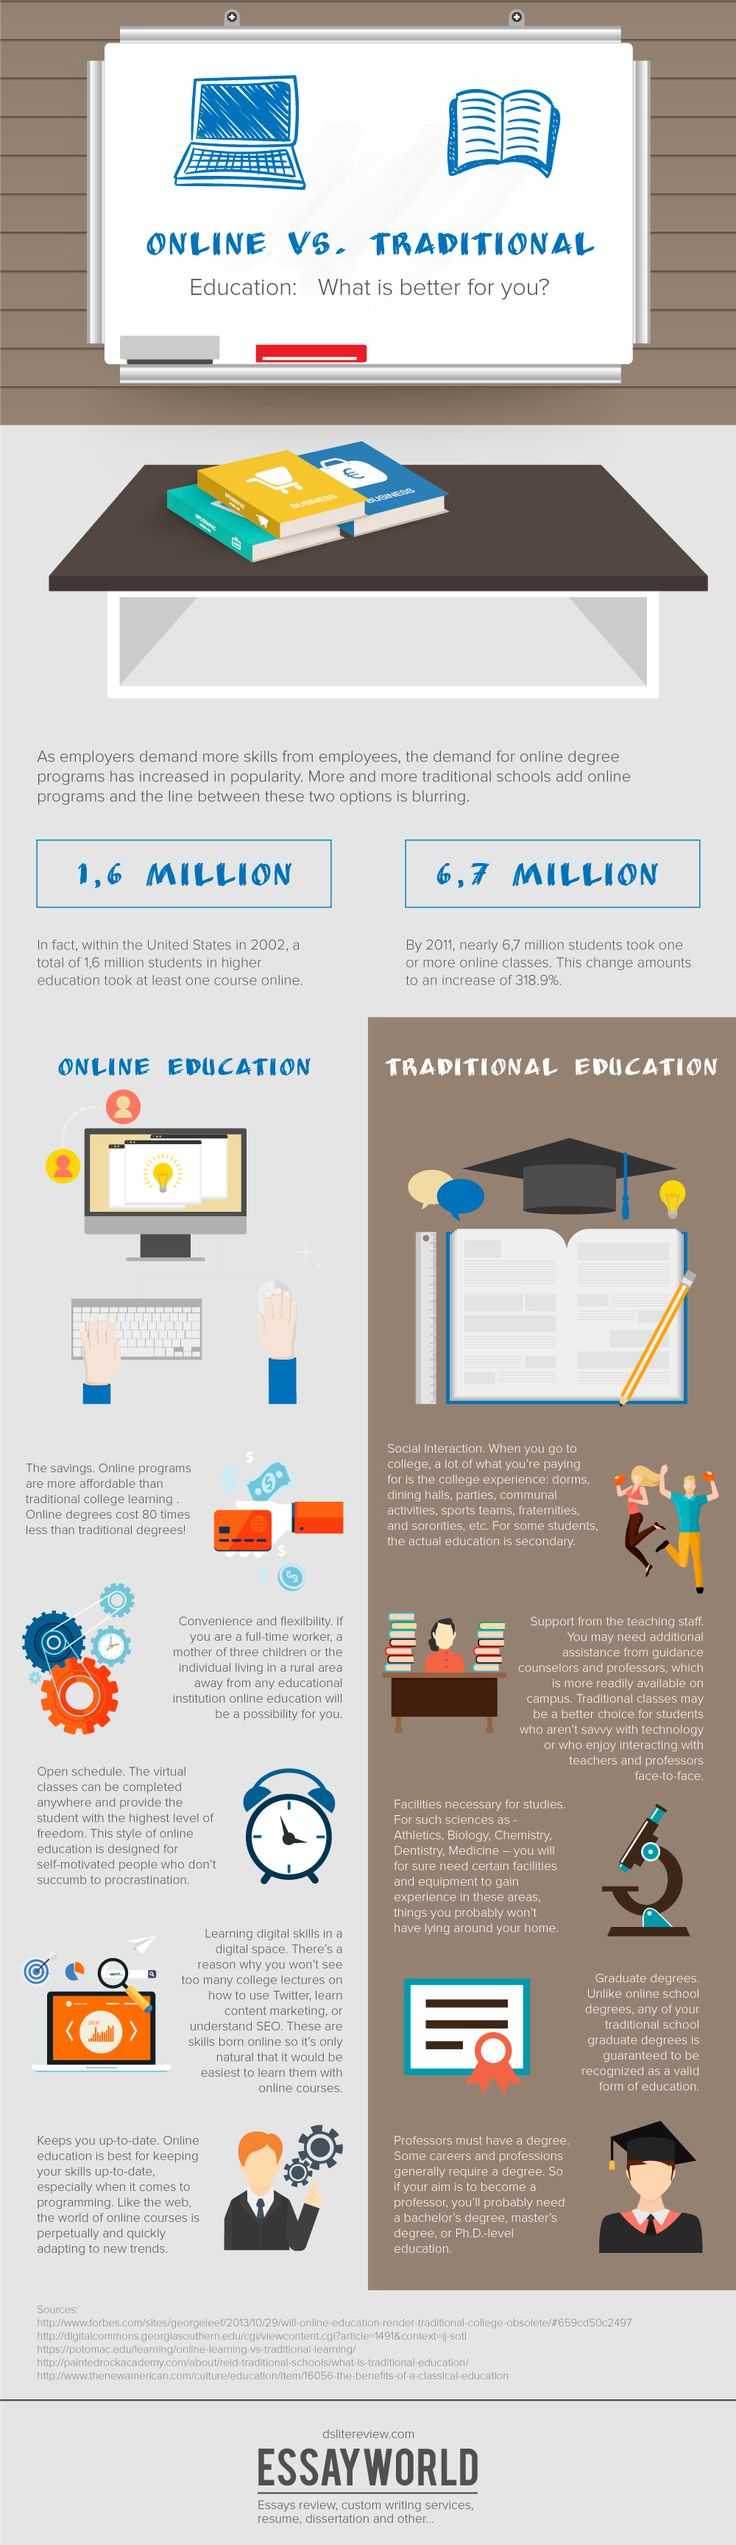 Online vs Traditional Education Infographic e Learning